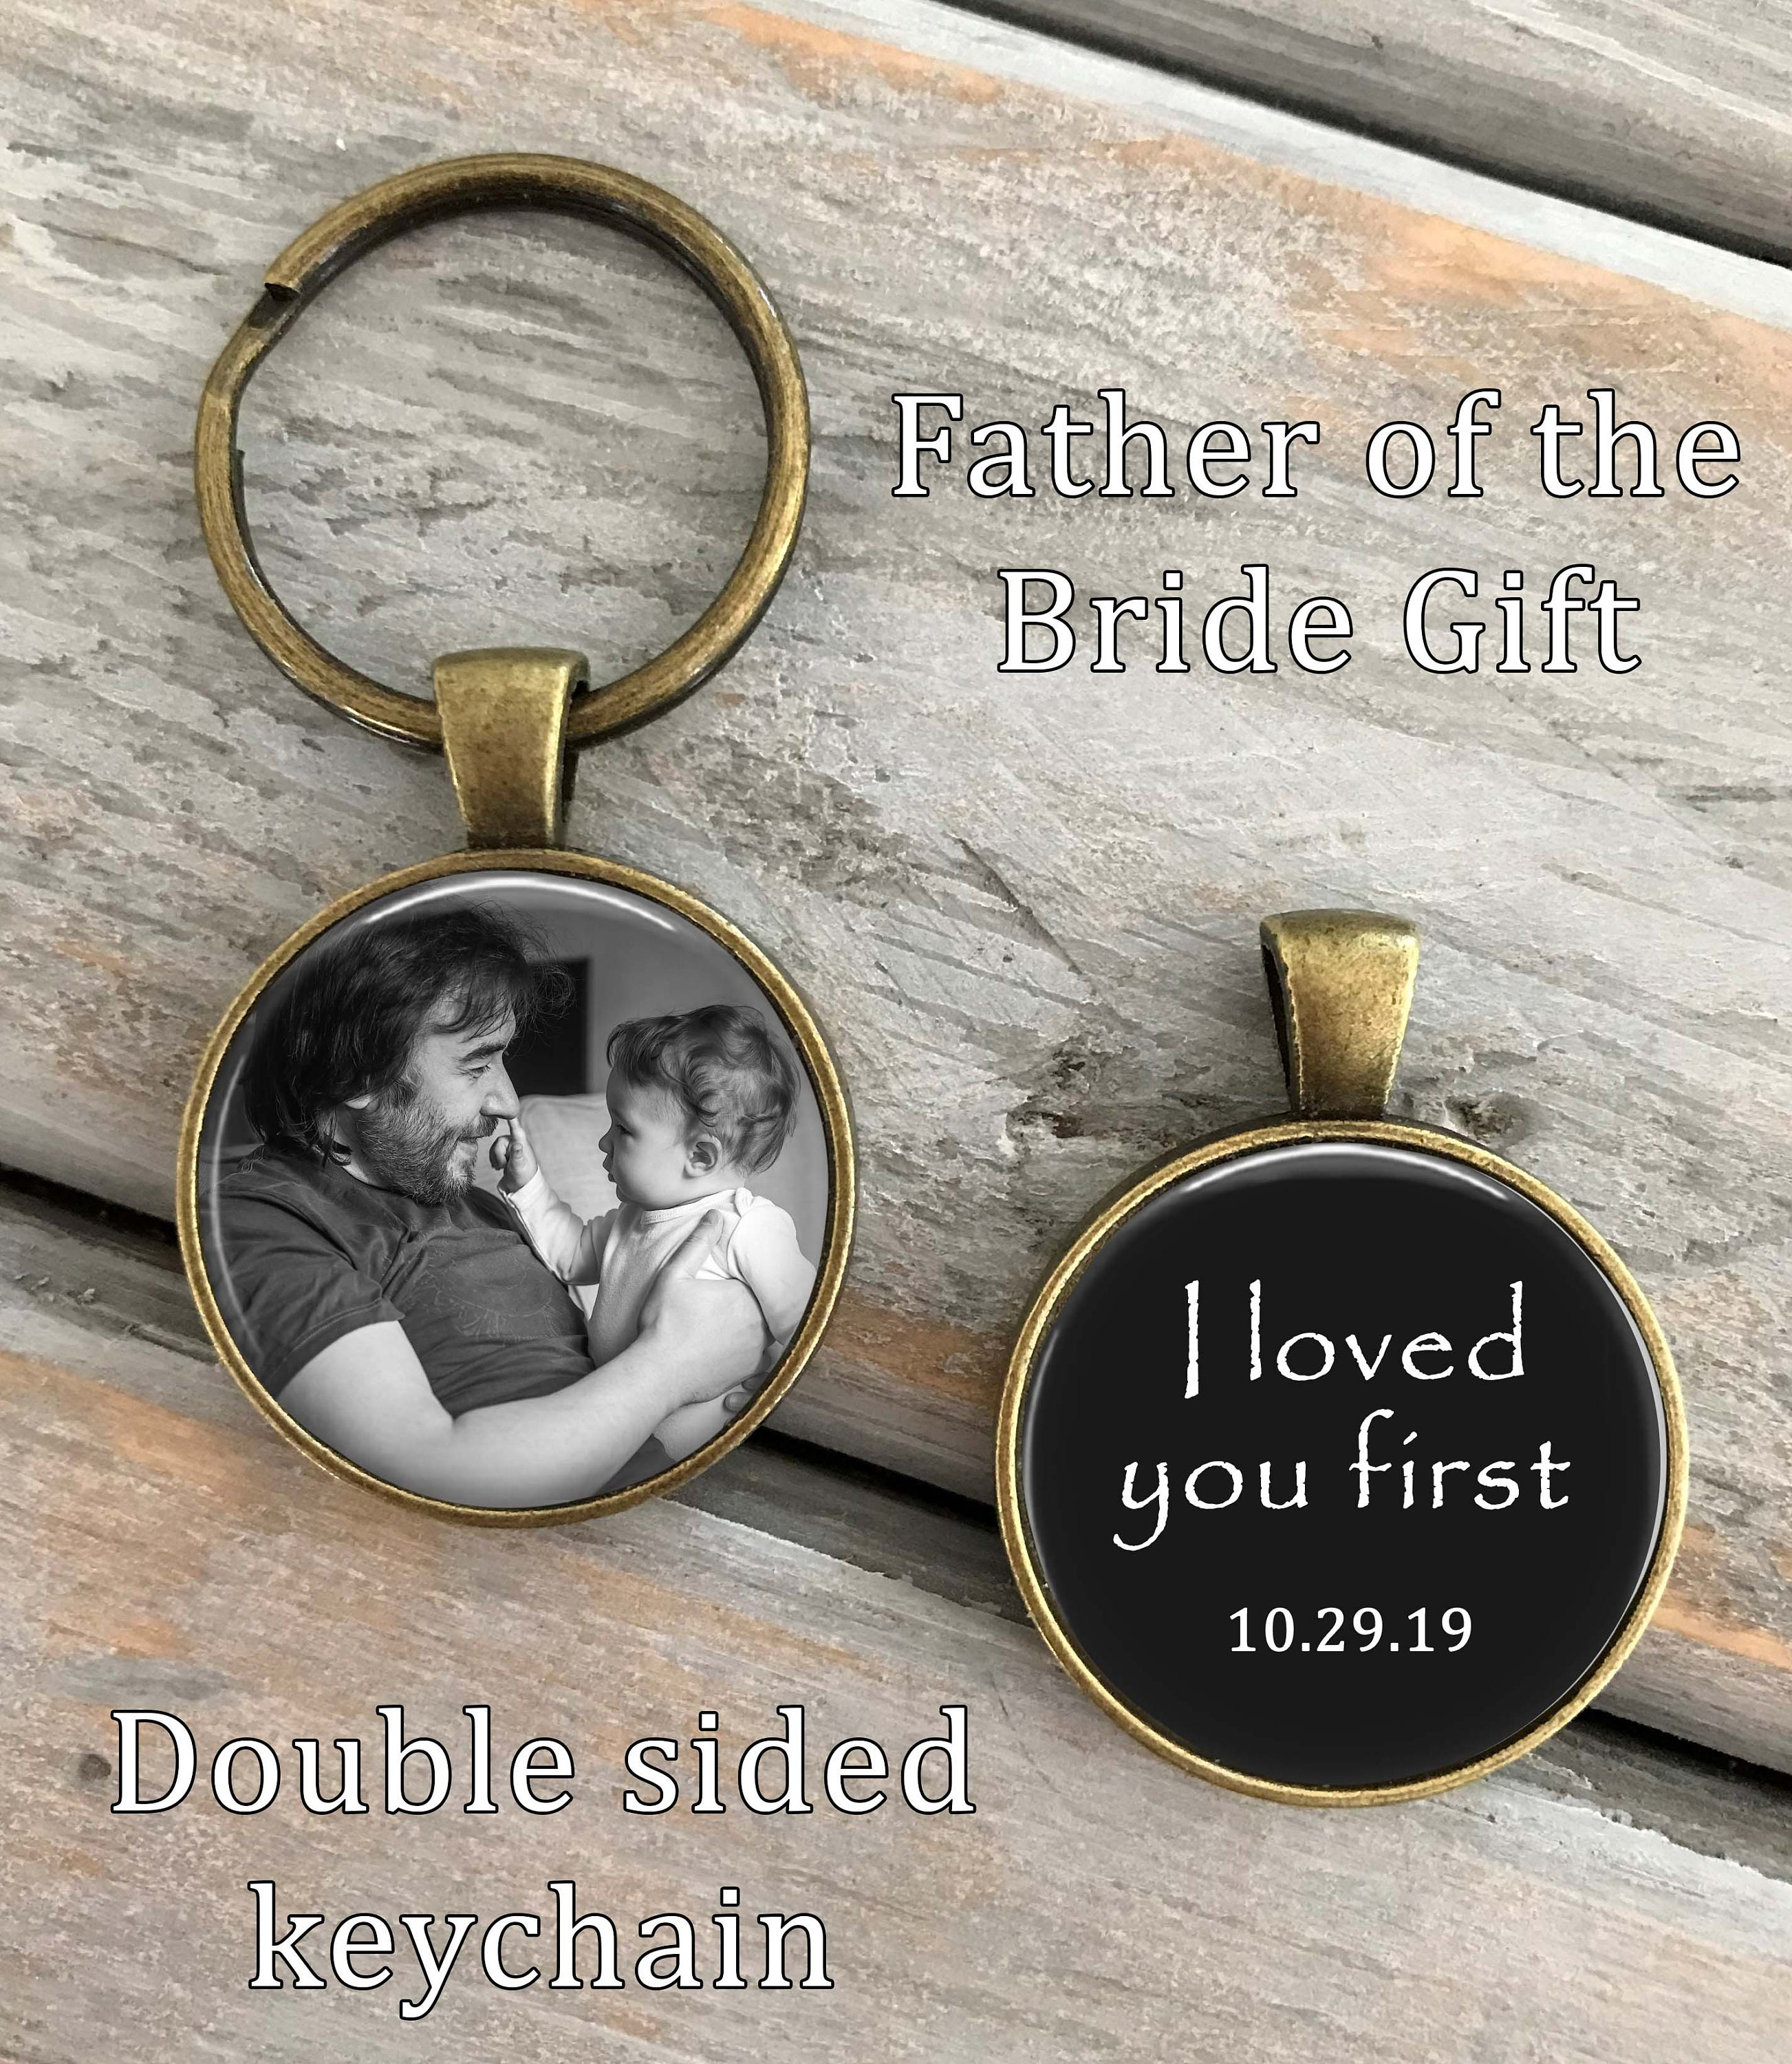 father of the bride gift from bride, father of the bride gift ideas